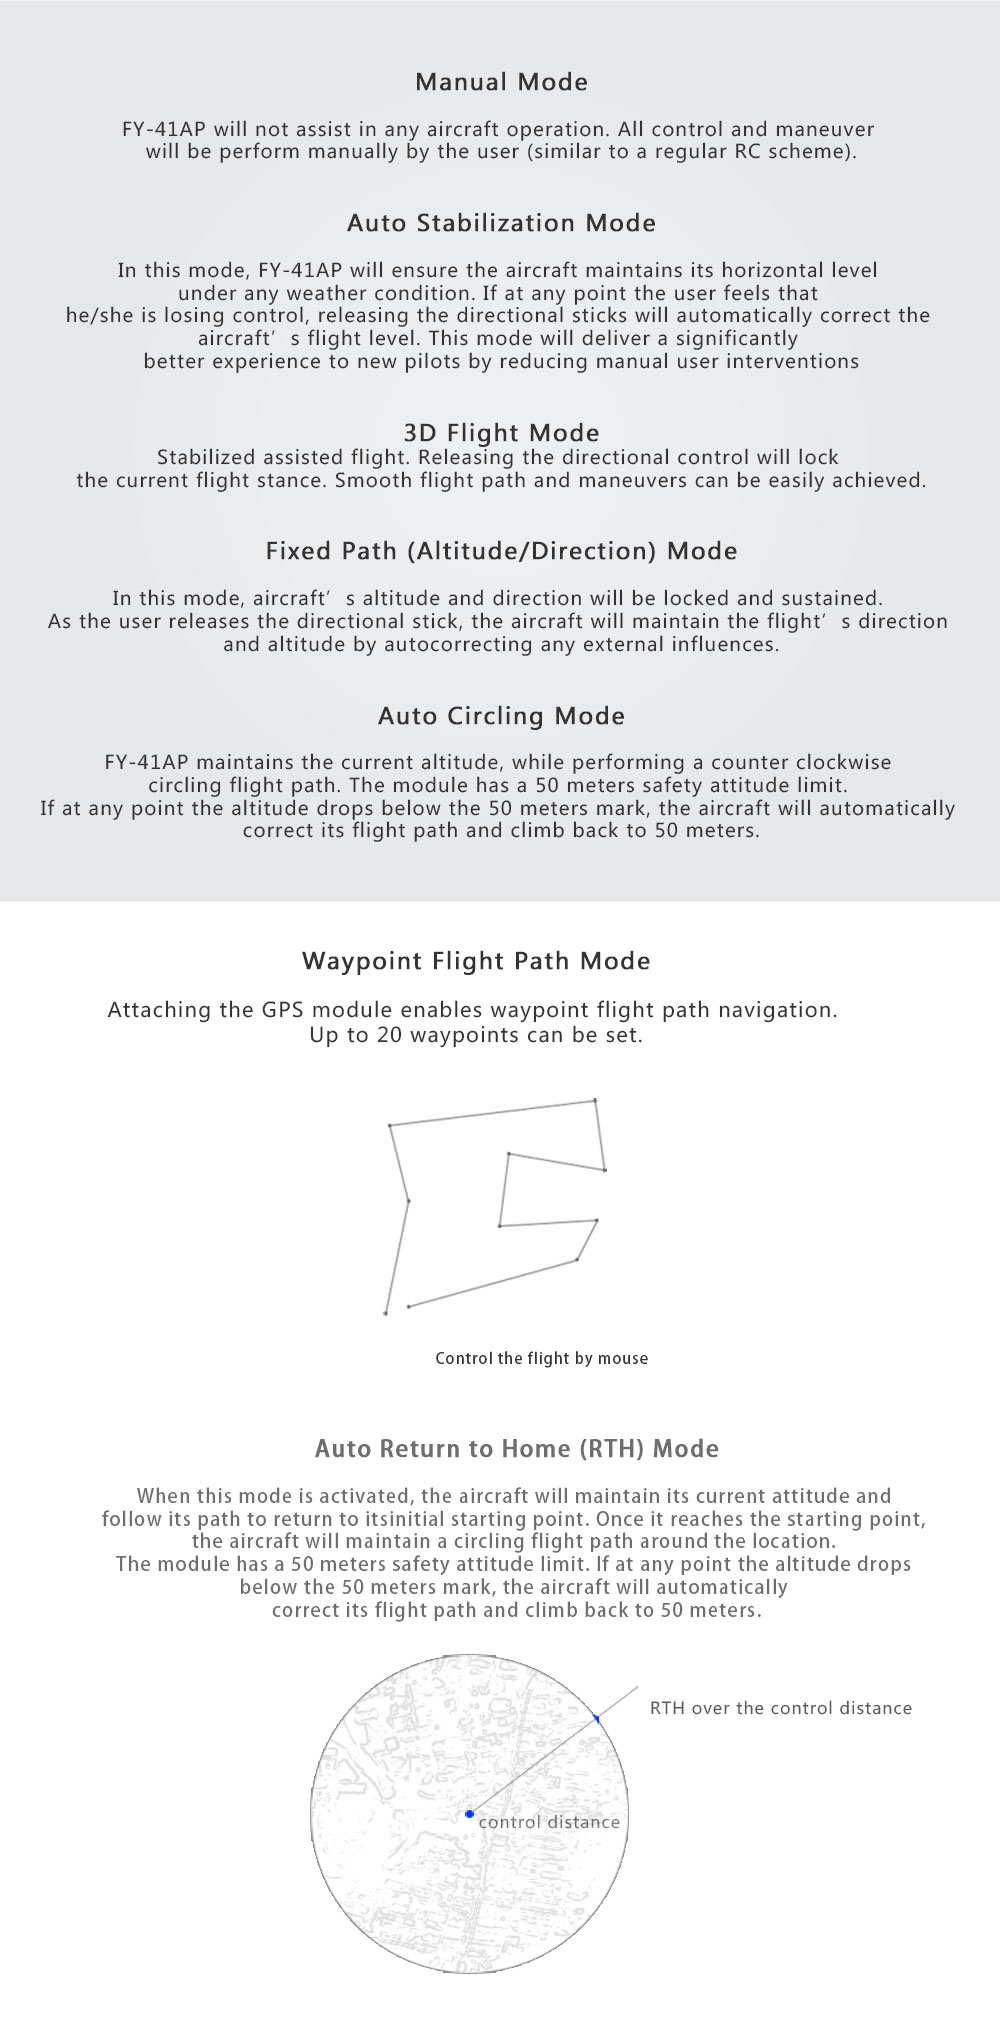 FeiyuTech 41ap a autopilot for fixed wing uav plane aerial surveying and mapping with 20 waypoints